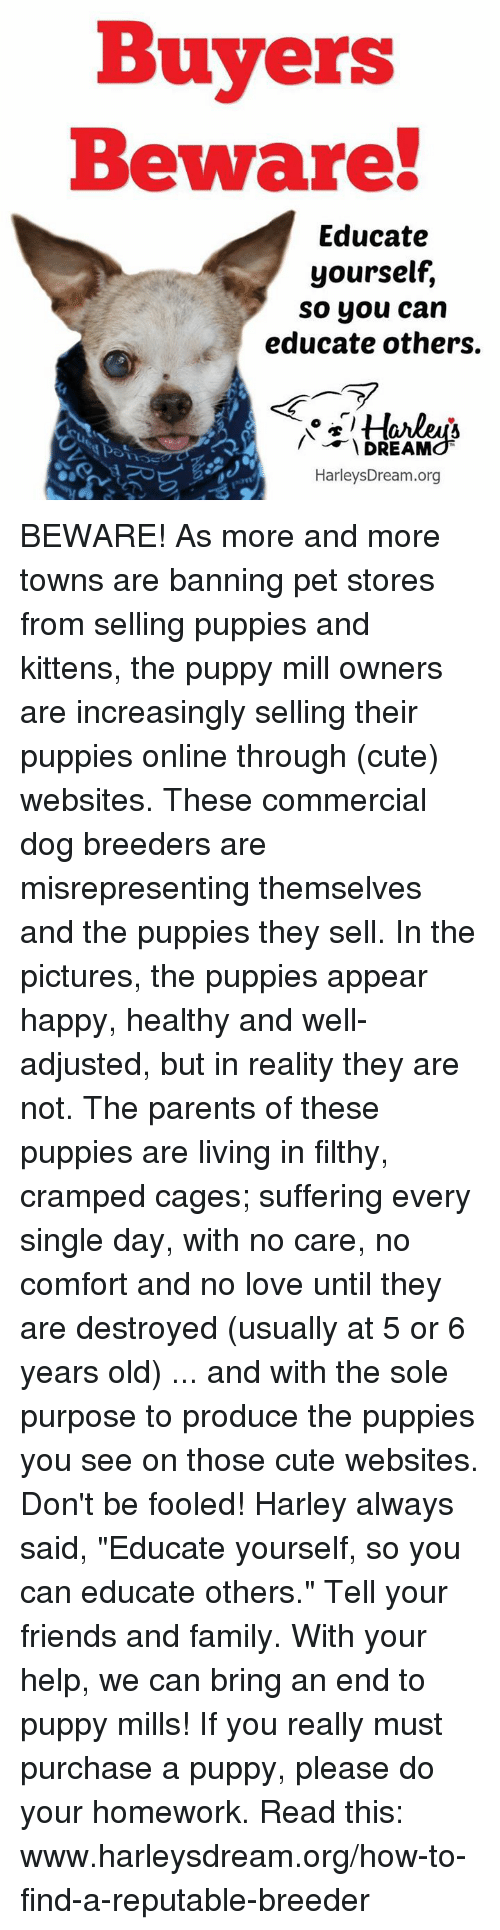 """Cute, Family, and Friends: Buyers  Beware  Educate  yourself,  so you can  educate others.  Lu  DREAM  HarleysDream.org BEWARE! As more and more towns are banning pet stores from selling puppies and kittens, the puppy mill owners are increasingly selling their puppies online through (cute) websites. These commercial dog breeders are misrepresenting themselves and the puppies they sell. In the pictures, the puppies appear happy, healthy and well-adjusted, but in reality they are not. The parents of these puppies are living in filthy, cramped cages; suffering every single day, with no care, no comfort and no love until they are destroyed (usually at 5 or 6 years old) ... and with the sole purpose to produce the puppies you see on those cute websites. Don't be fooled!  Harley always said, """"Educate yourself, so you can educate others."""" Tell your friends and family. With your help, we can bring an end to puppy mills!  If you really must purchase a puppy, please do your homework. Read this: www.harleysdream.org/how-to-find-a-reputable-breeder"""